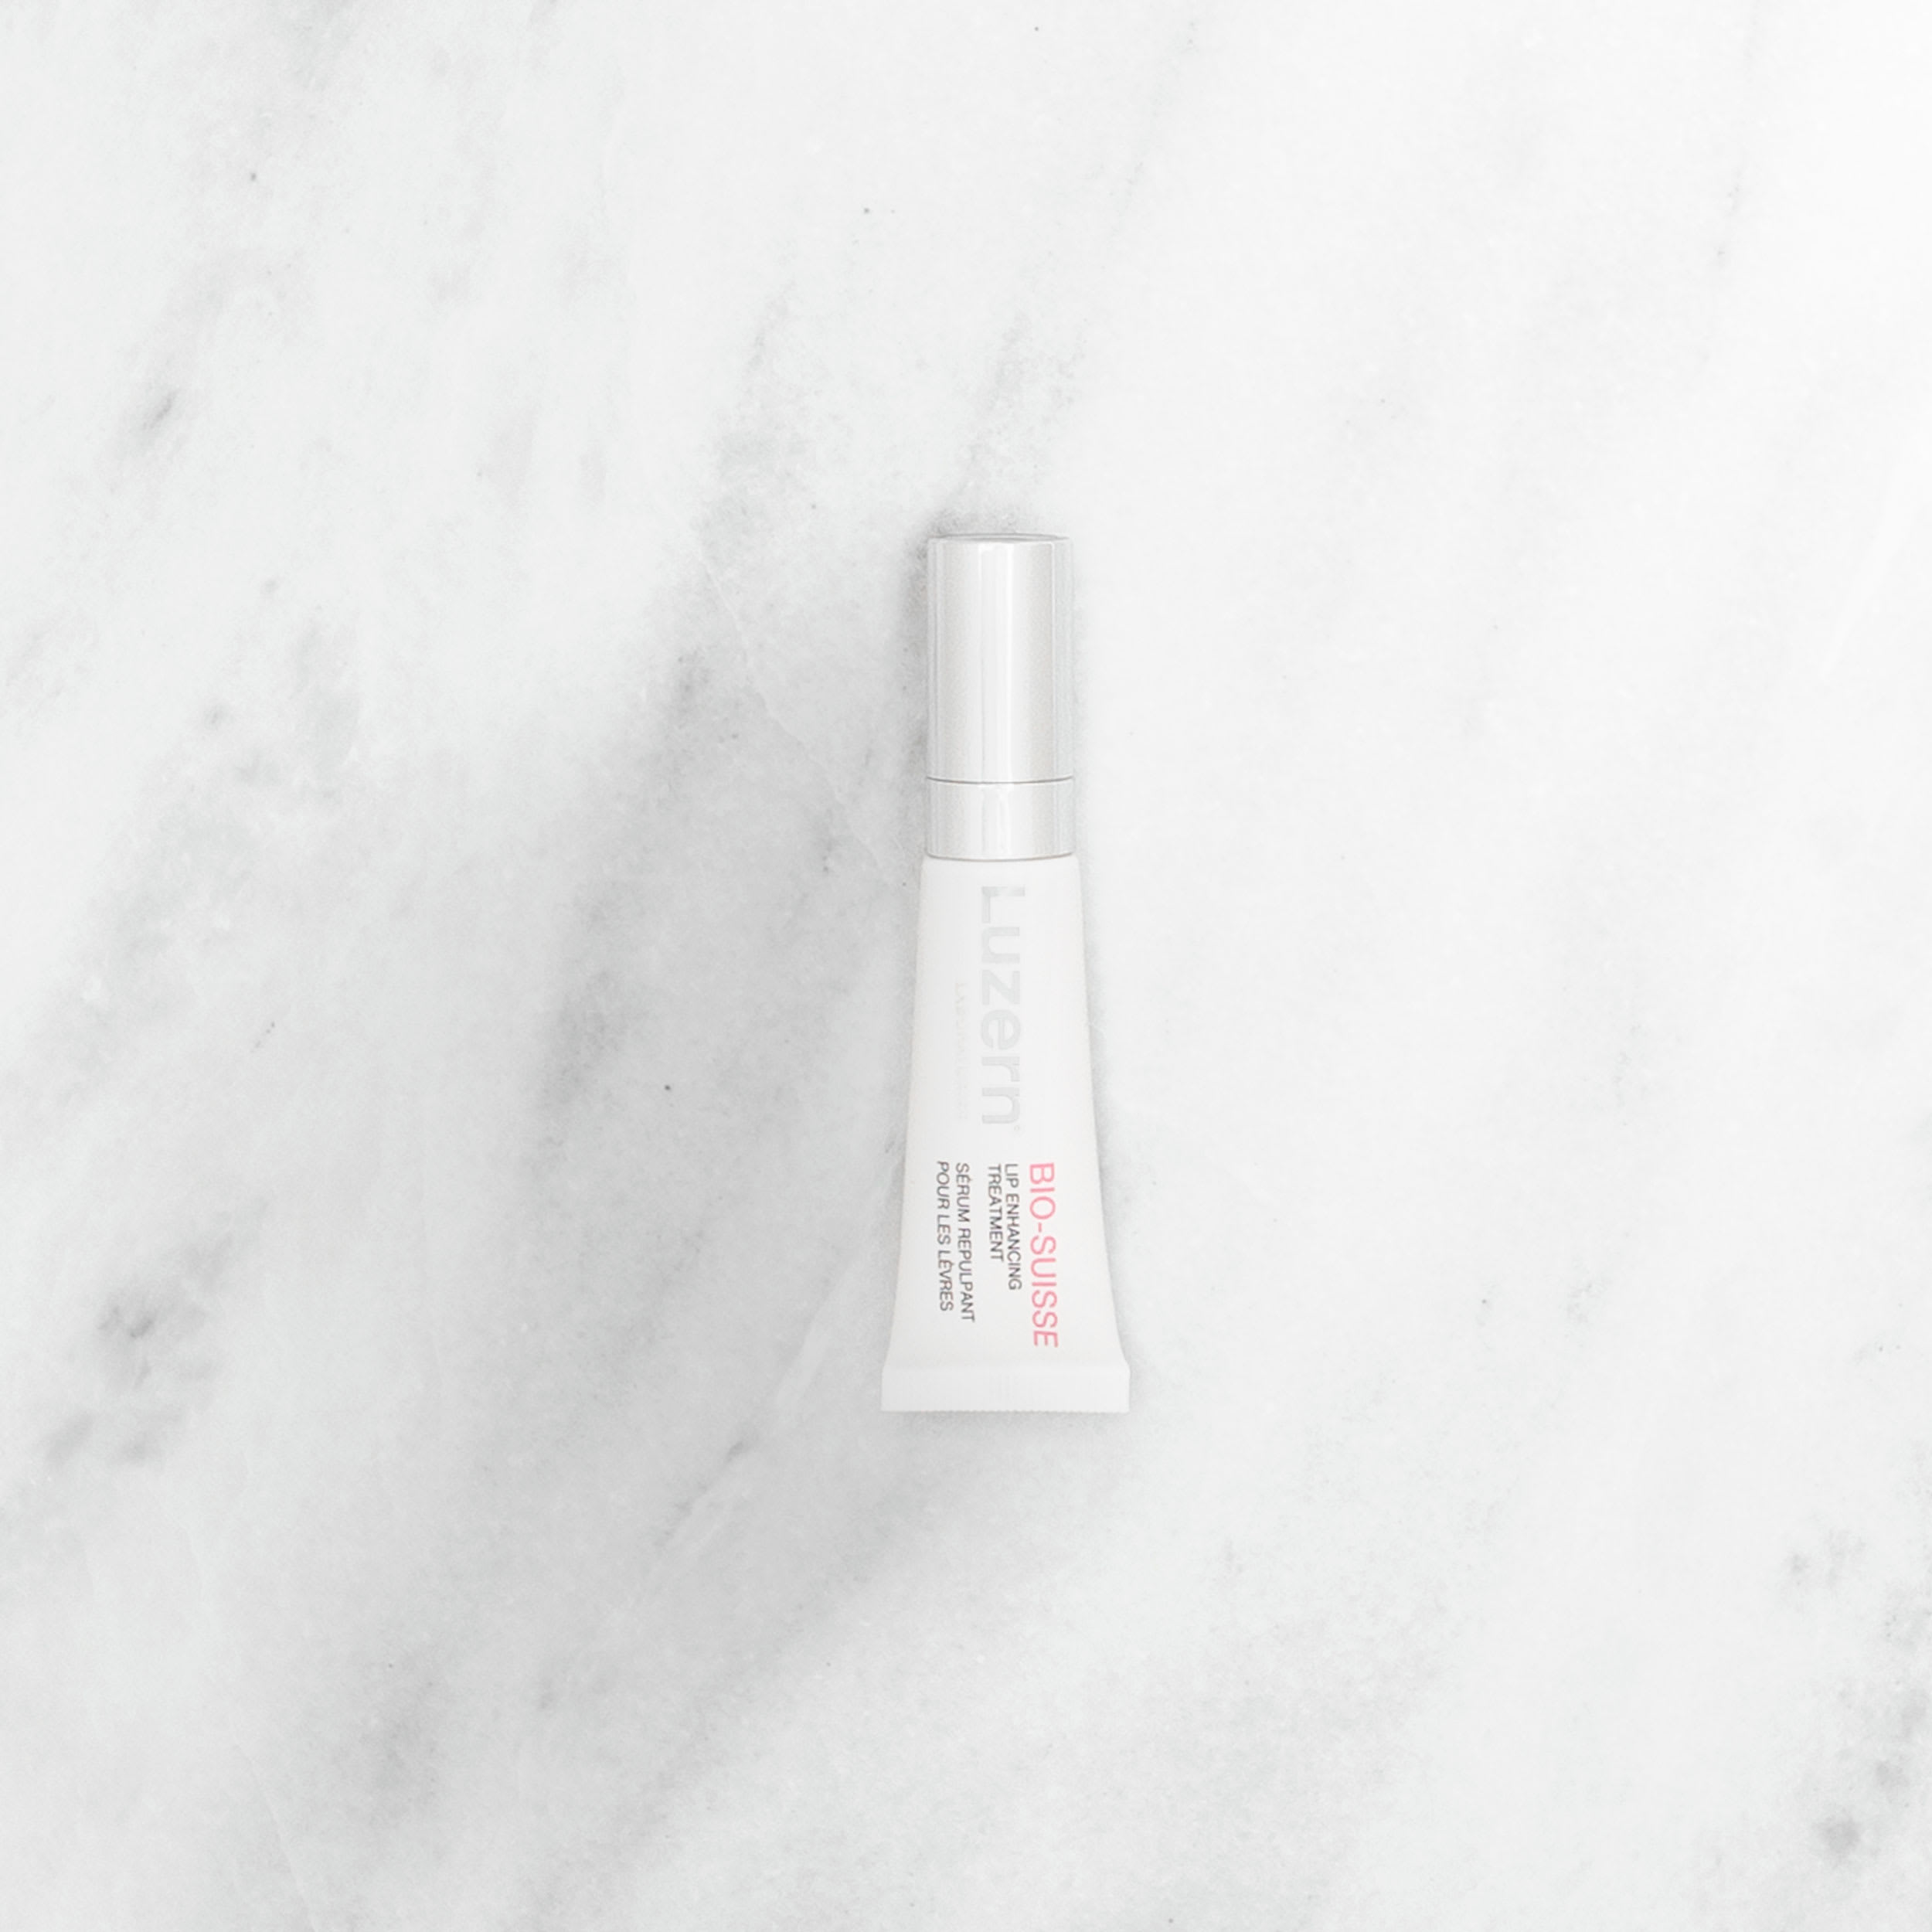 Luzern's LEssentials BioSuisse Lip Treatment